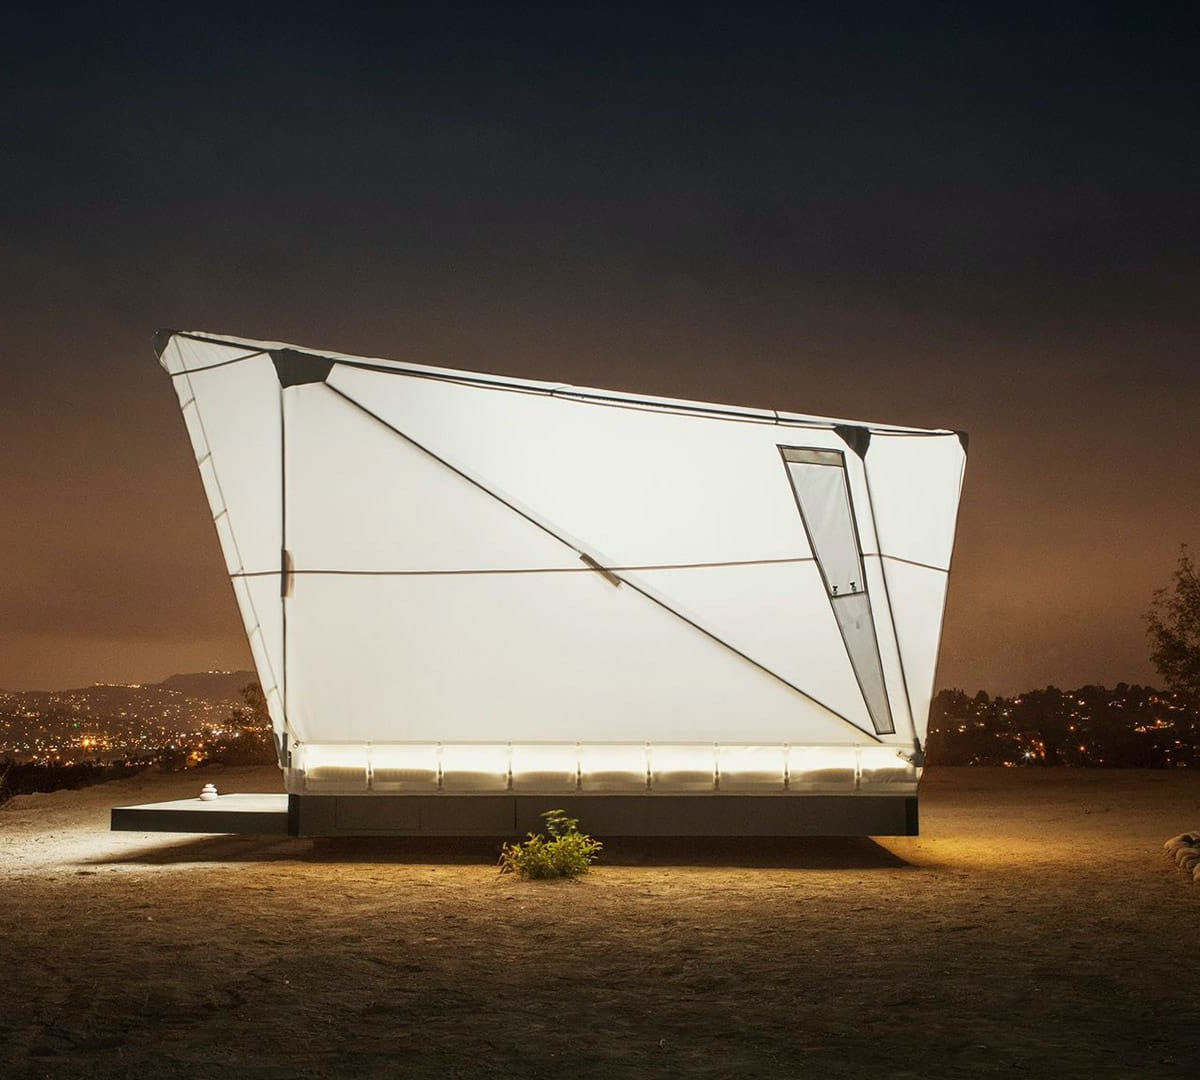 Jupe flat-packed shelter offers cosmos-inspired short-term stays